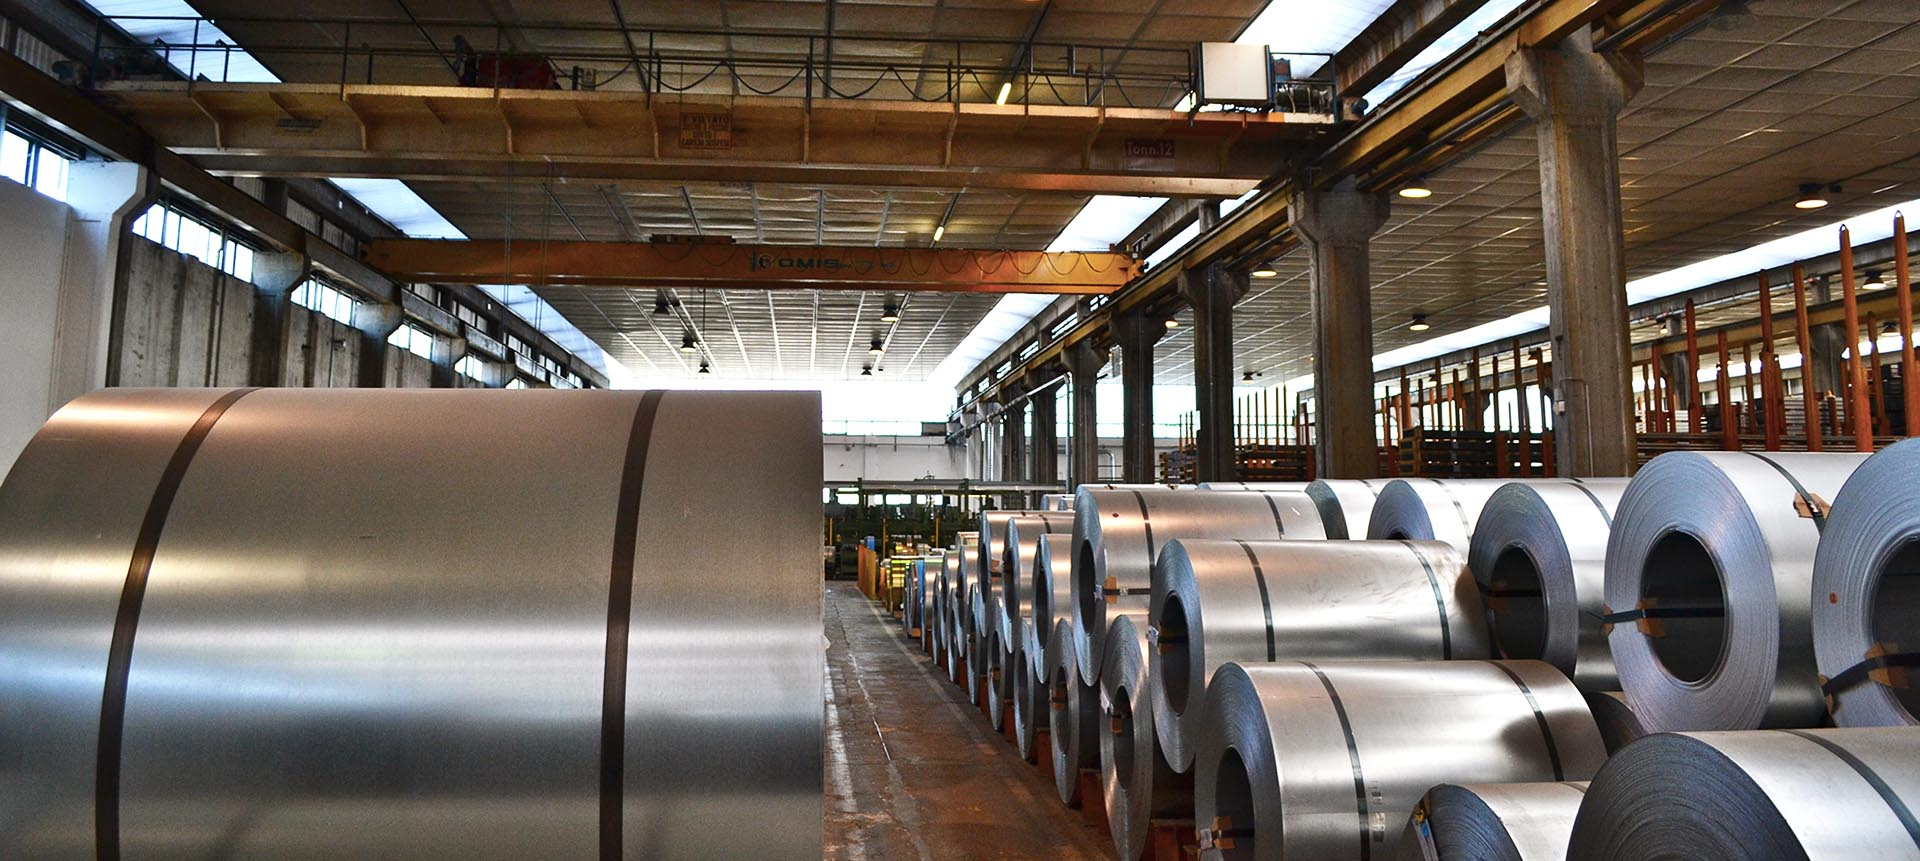 Steel rolls to make the metal systems for windows and doors